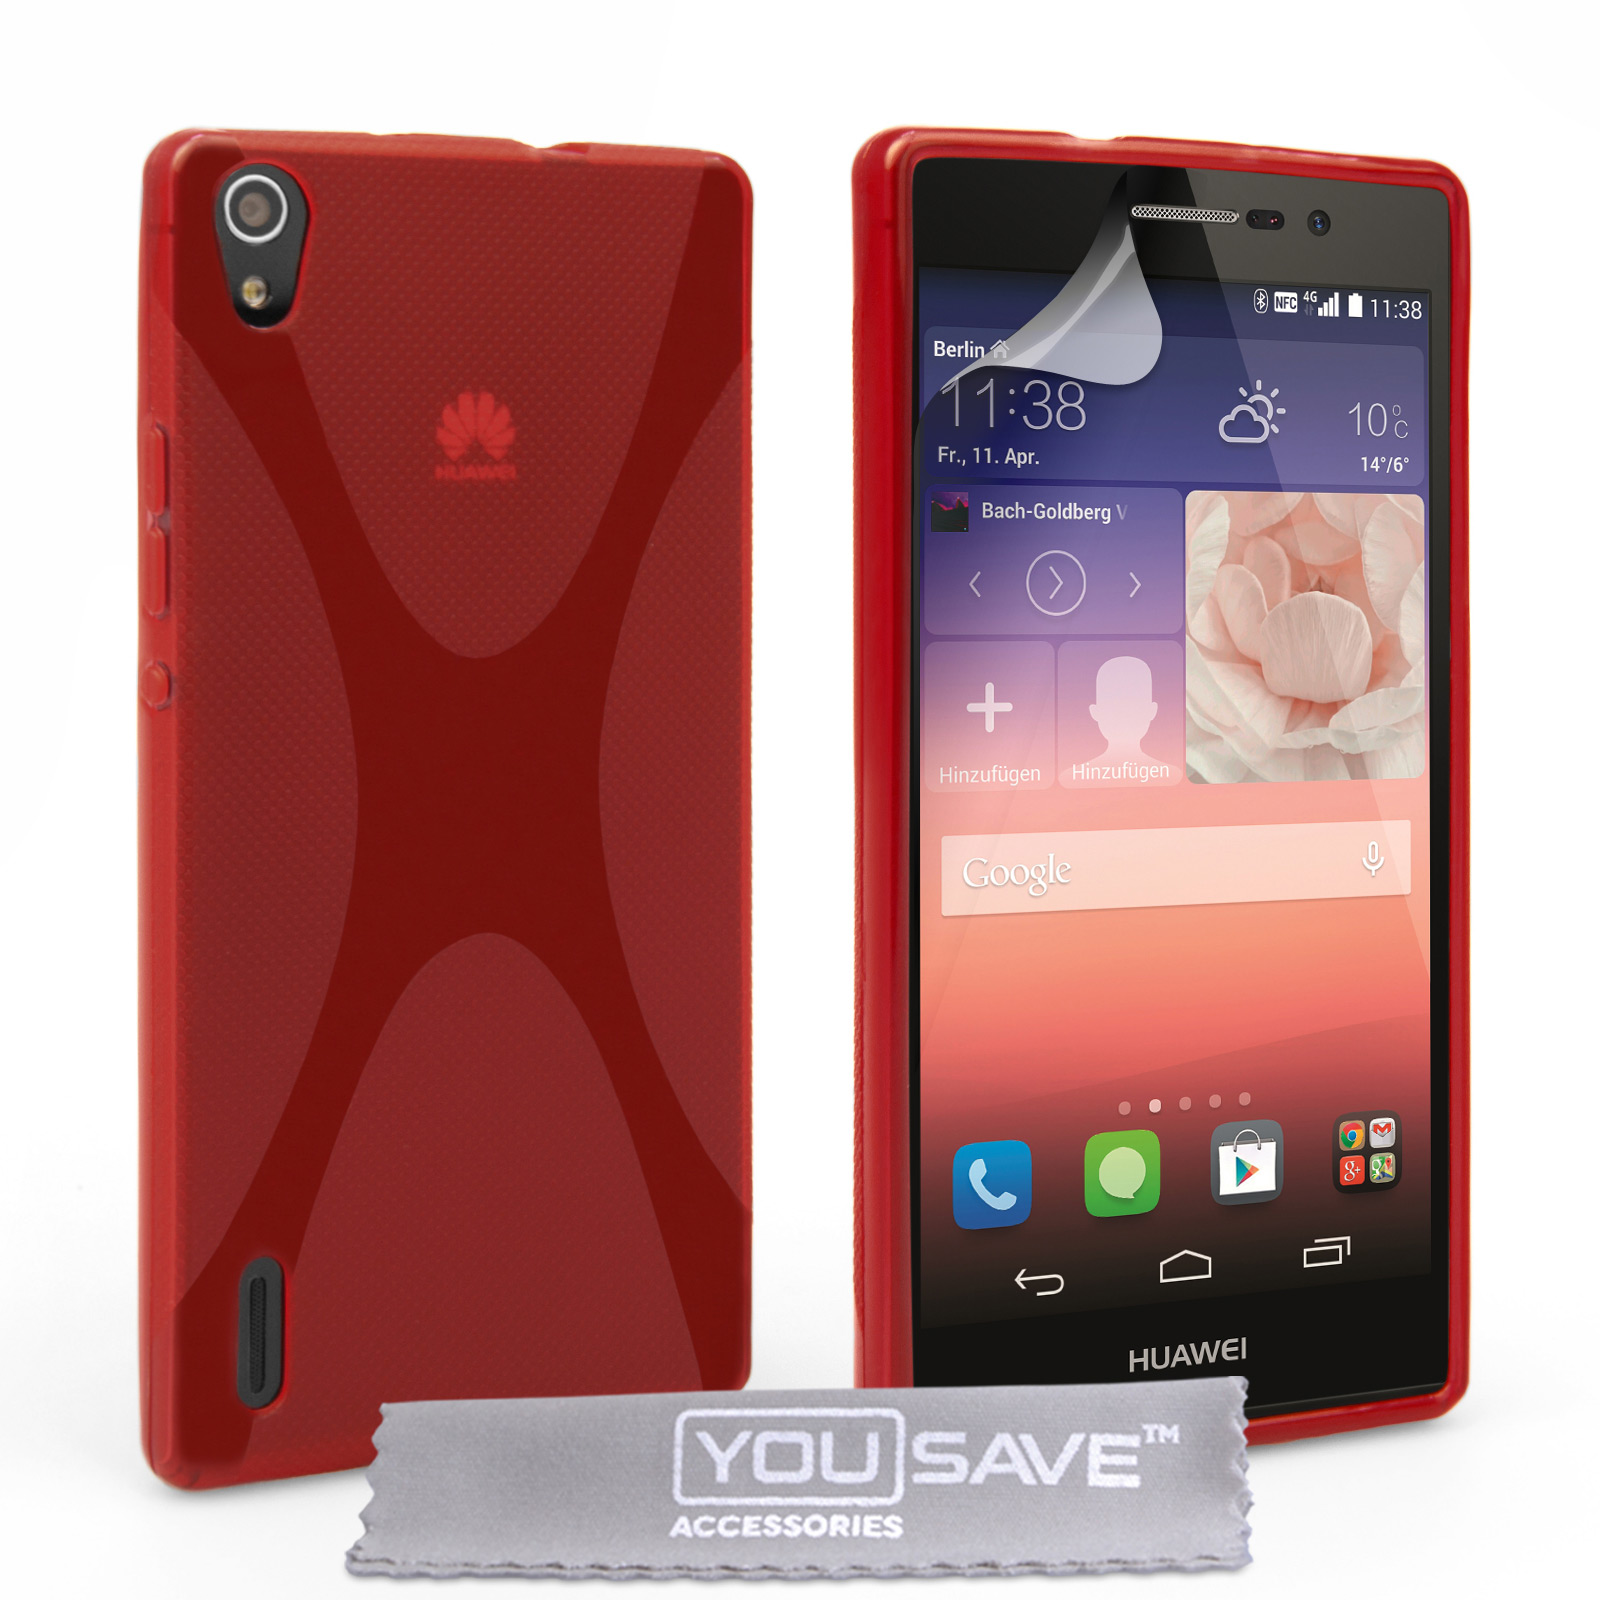 YouSave Accessories Huawei Ascend P7 Silicone Gel X-Line Case - Red